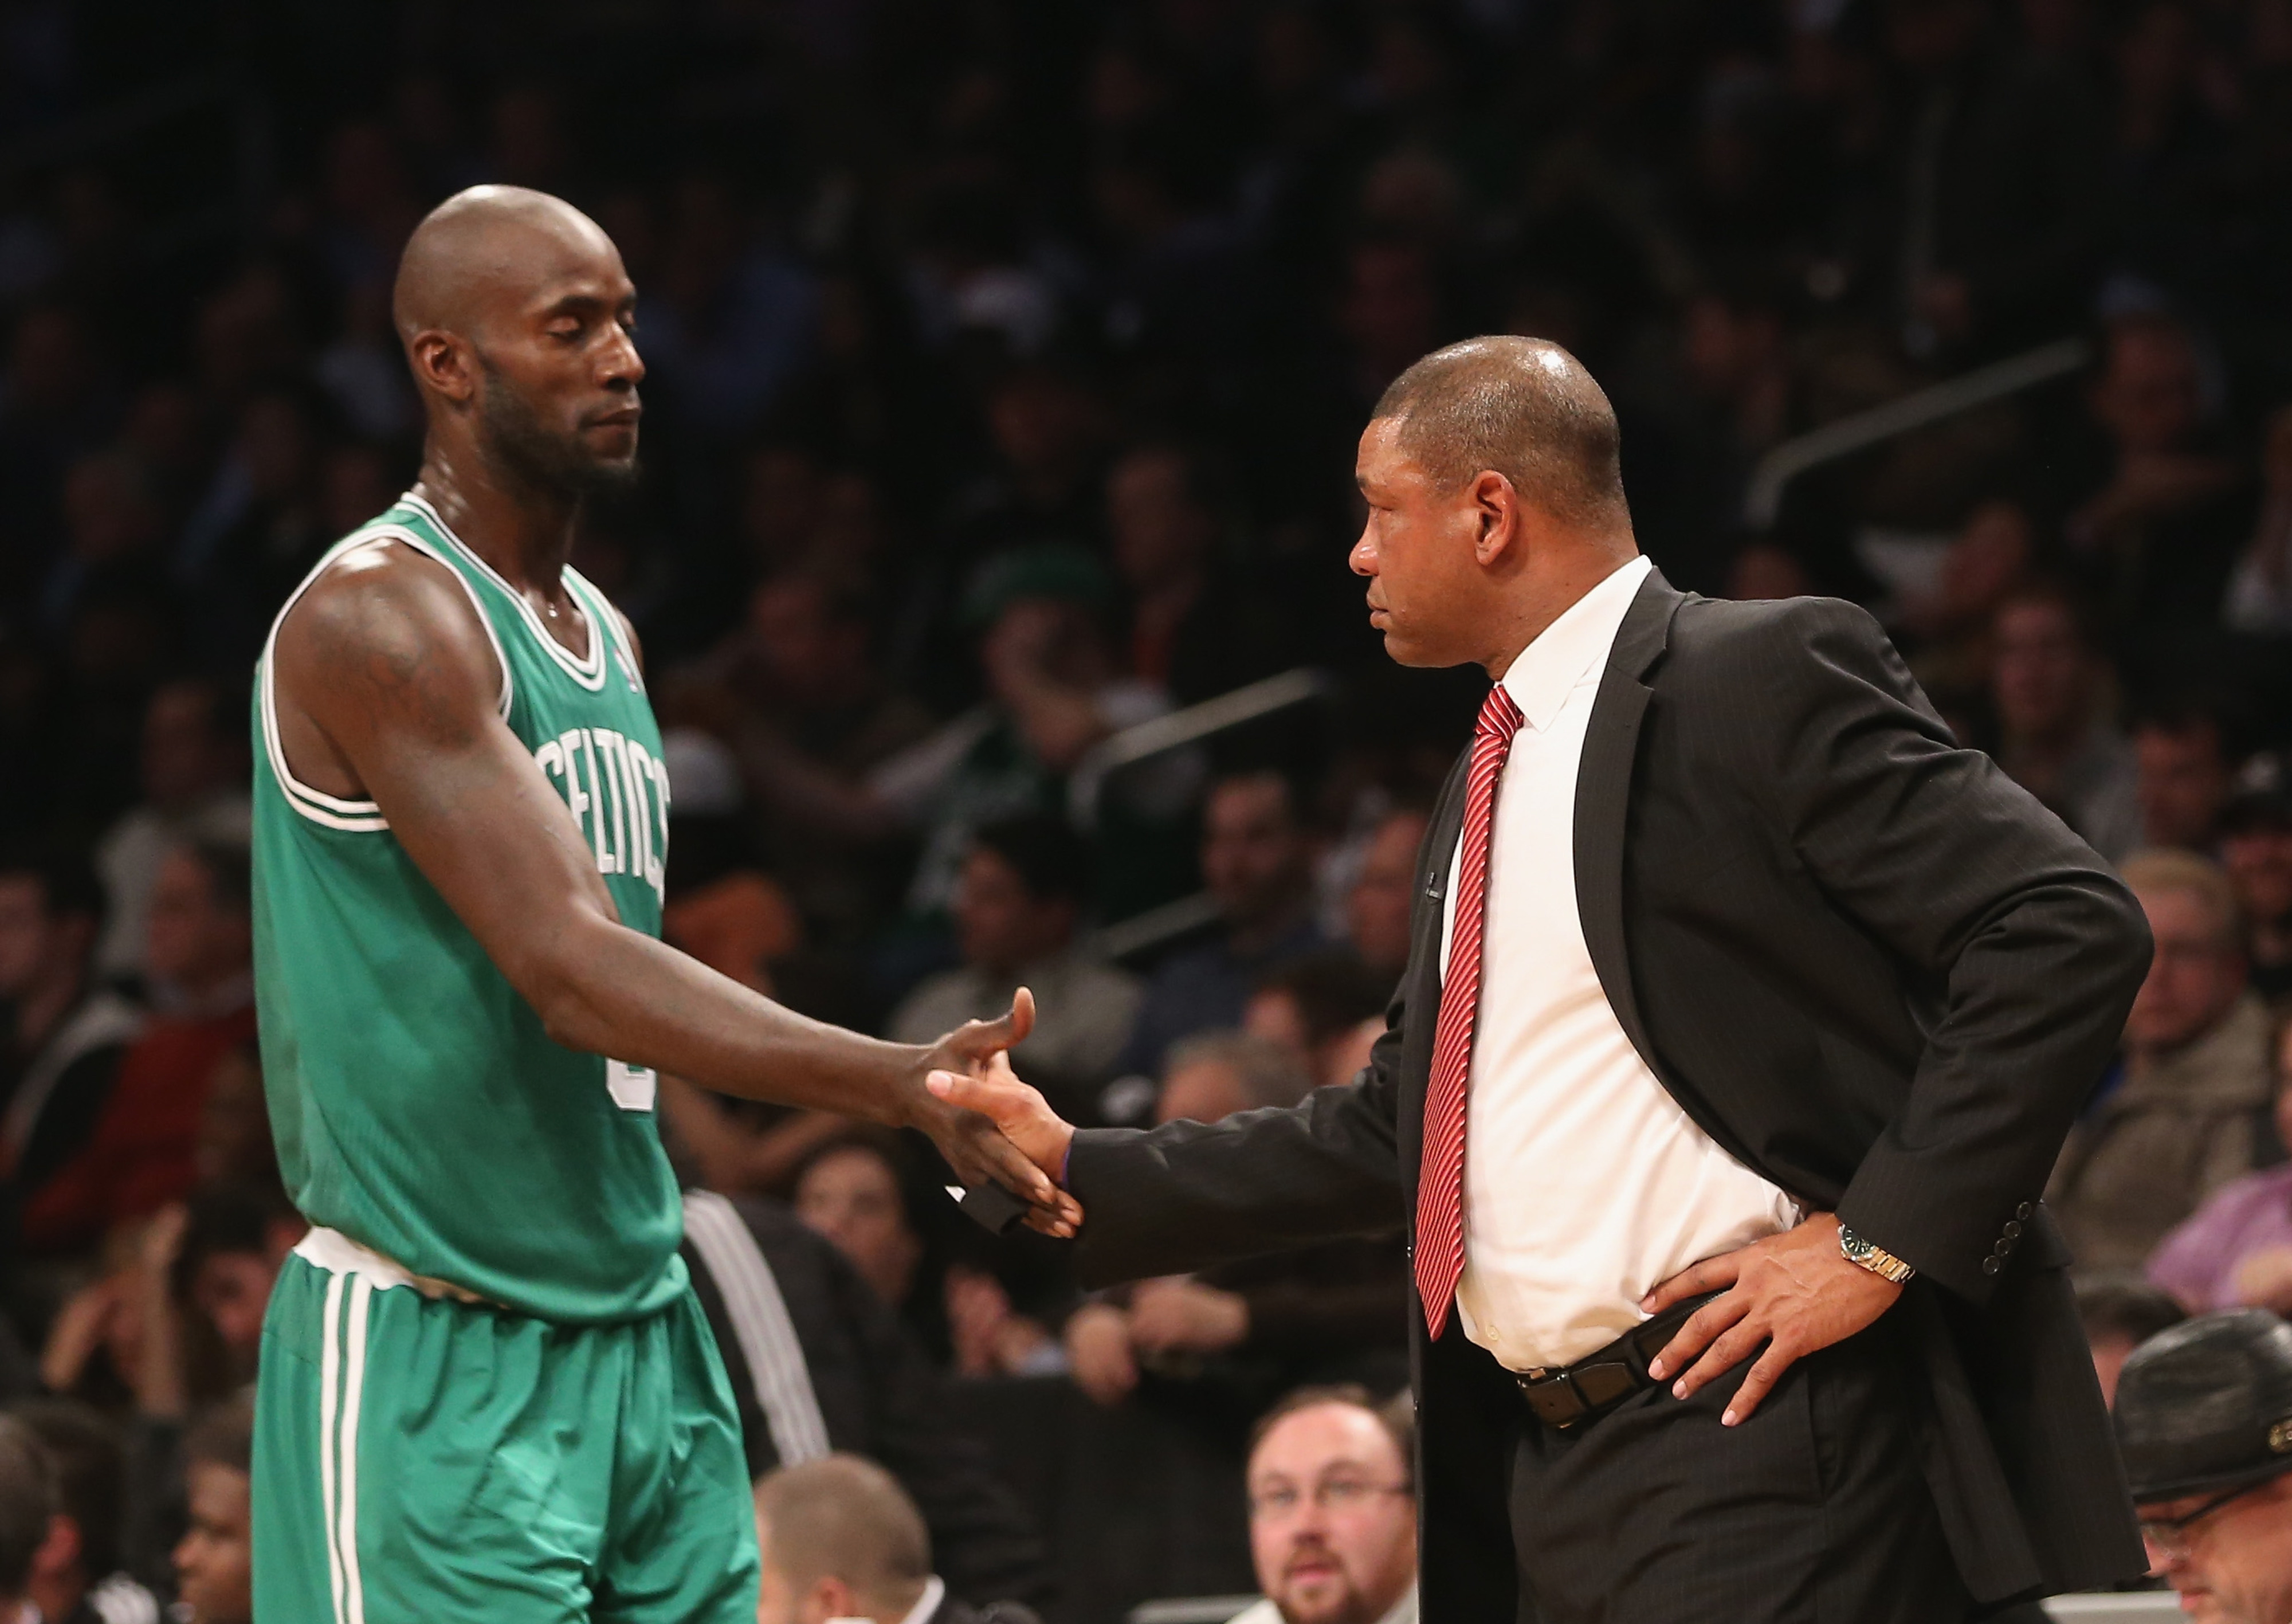 Kevin Garnett would waive no-trade clause to join Clippers, according to report